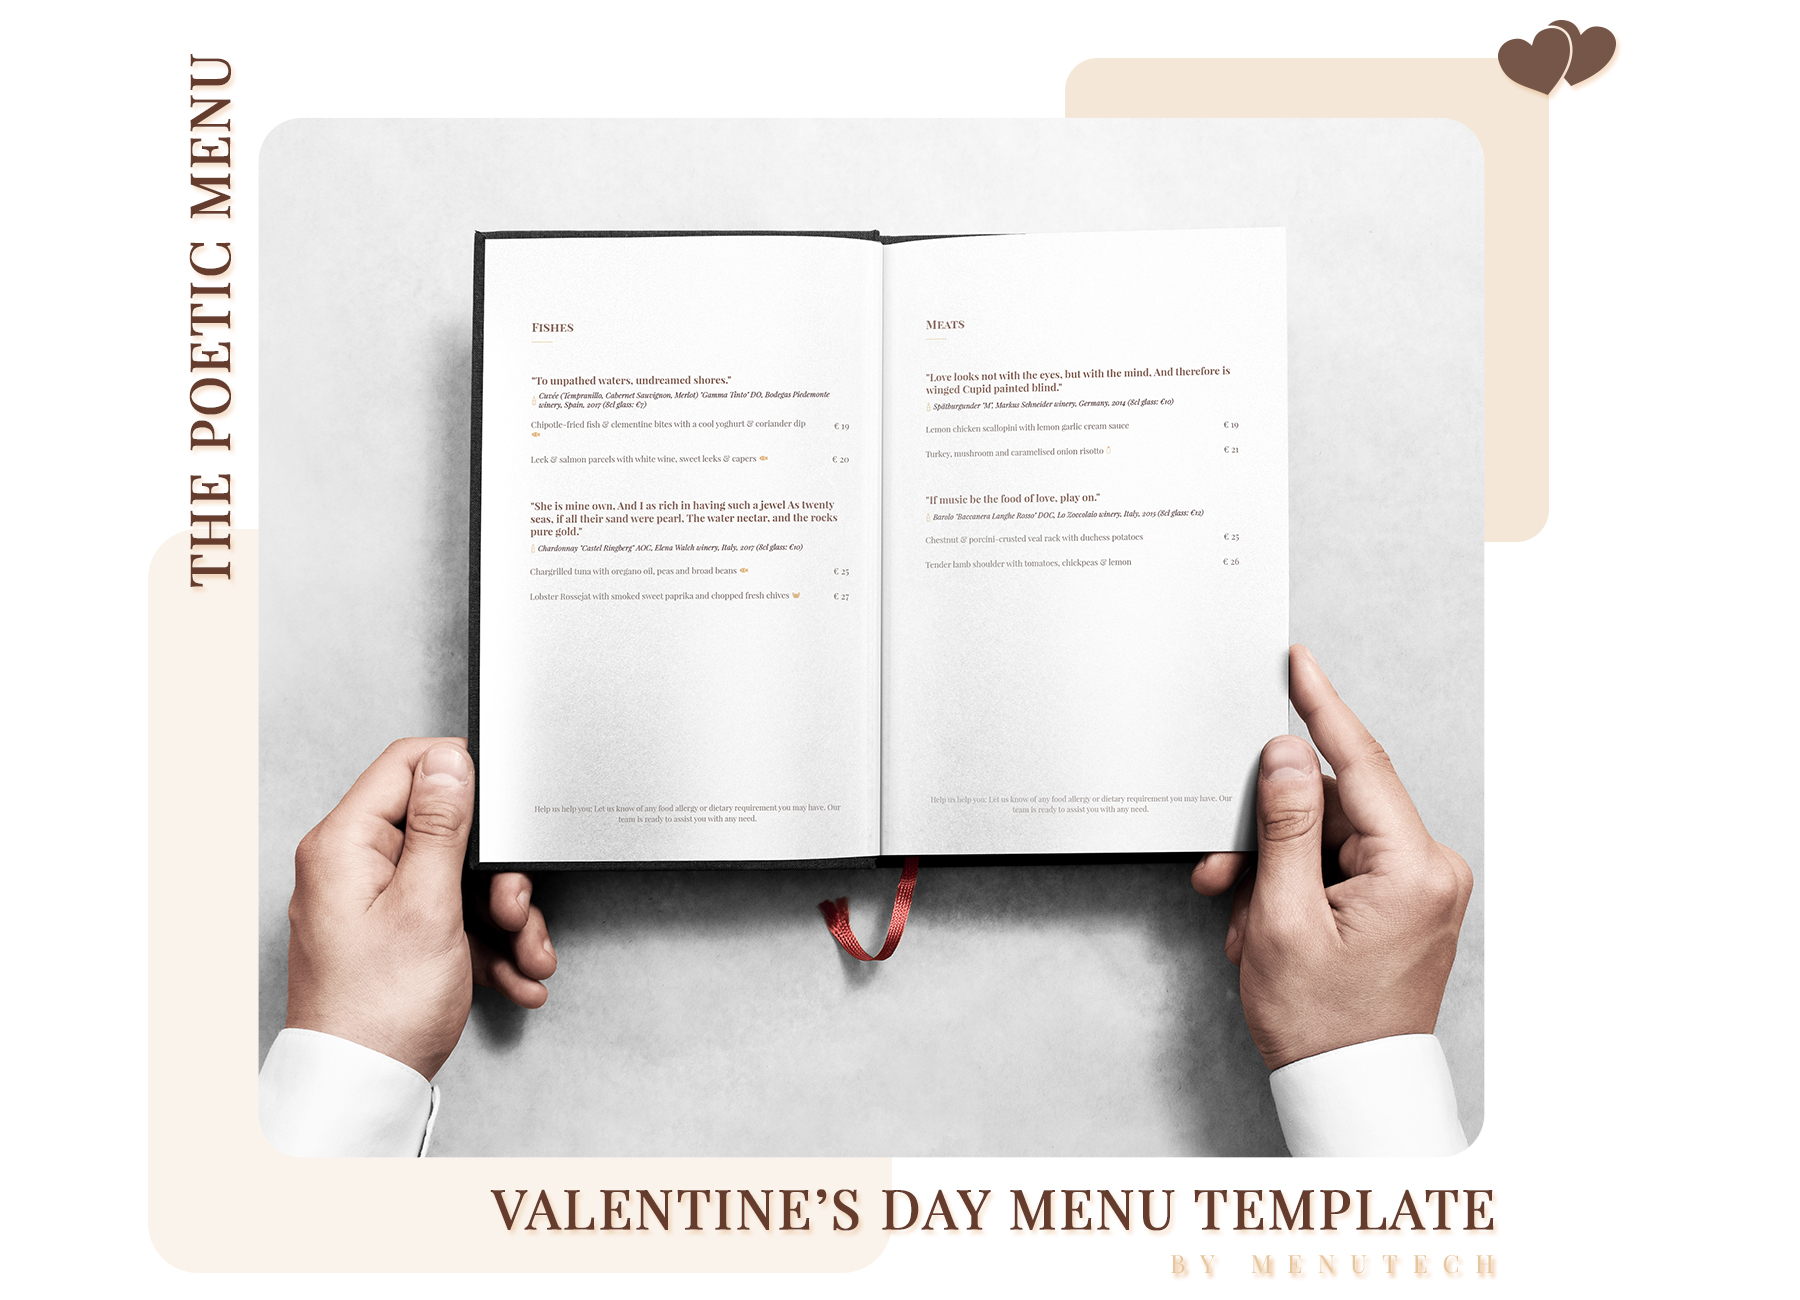 Menutech Valentine's Day poetic menu